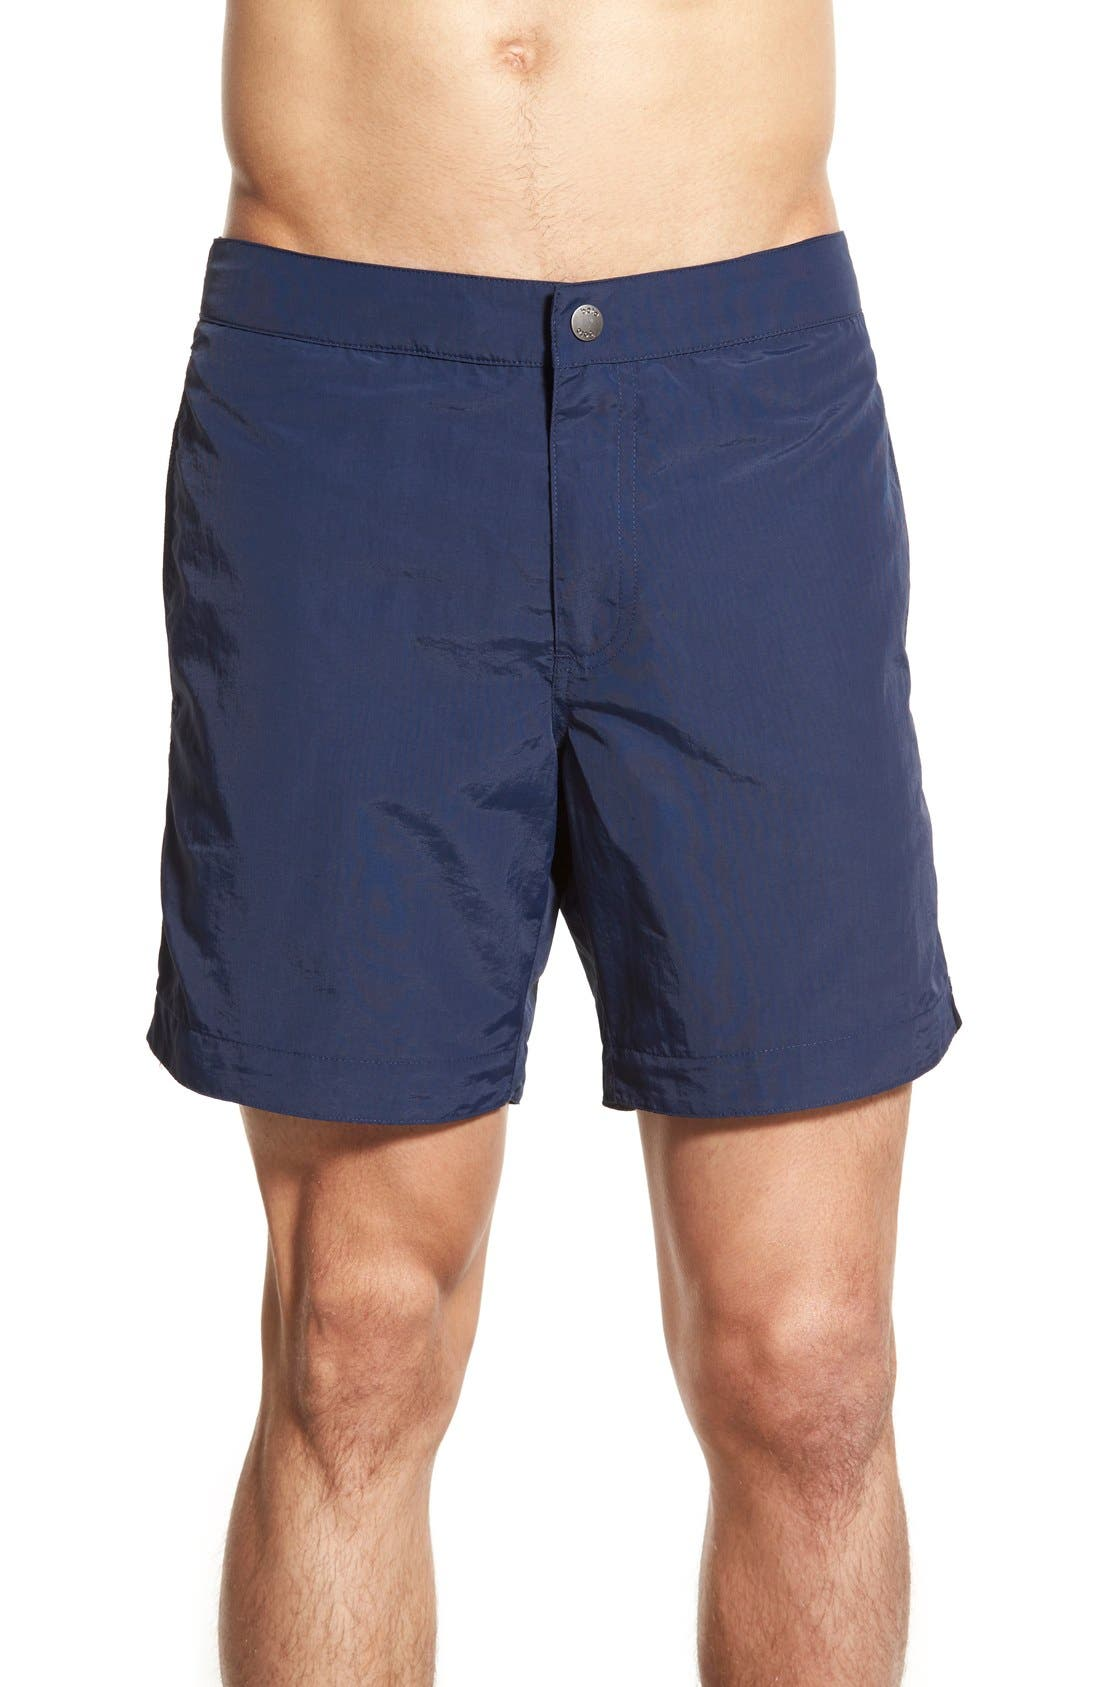 BOTO 'Aruba' Tailored Fit 6.5 Inch Swim Trunks